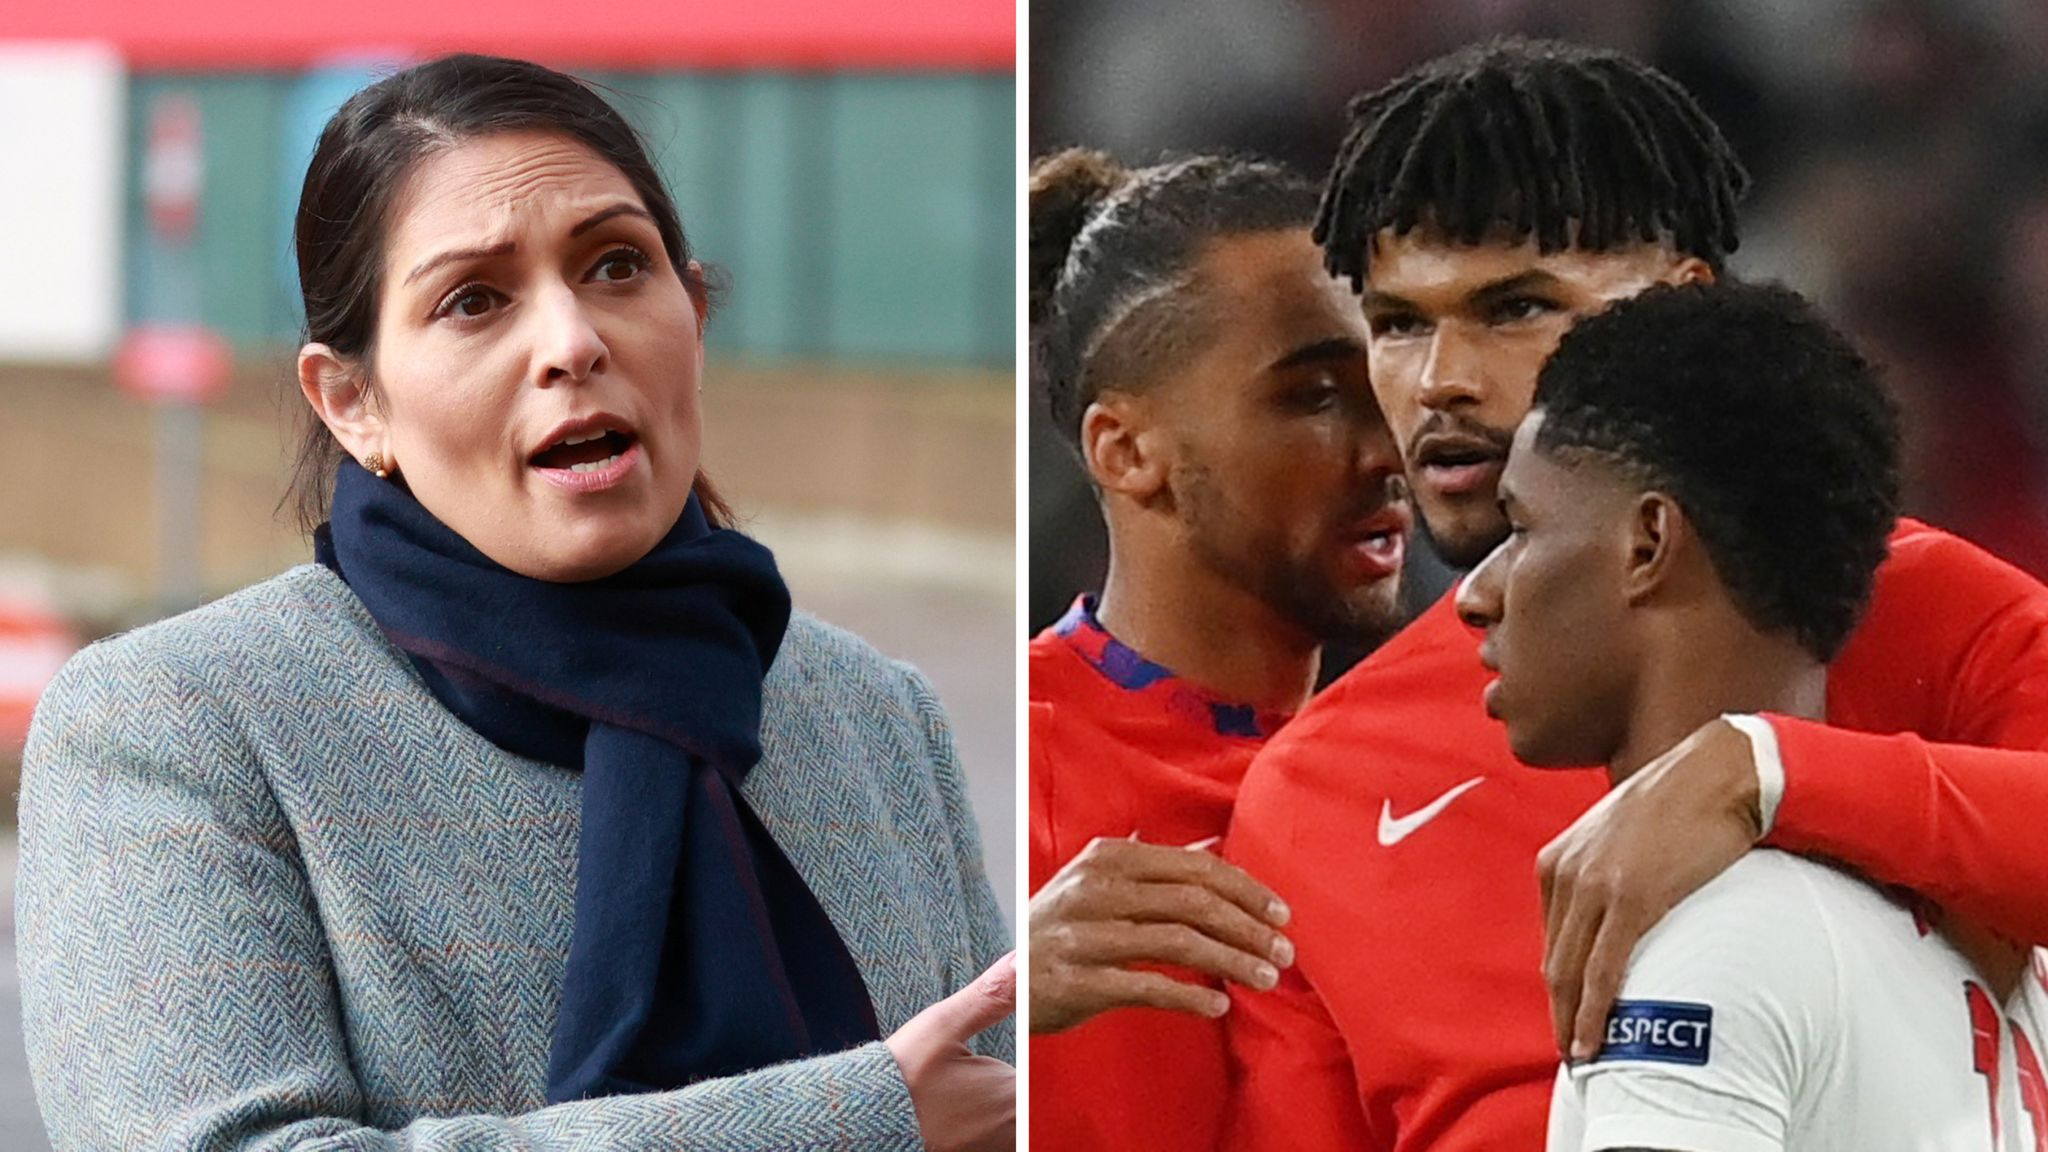 Priti Patel is the news again for political tokenism and point scoring as she was called out on twitter by Tyrone Mings for her comments on taking the knee and racism in football